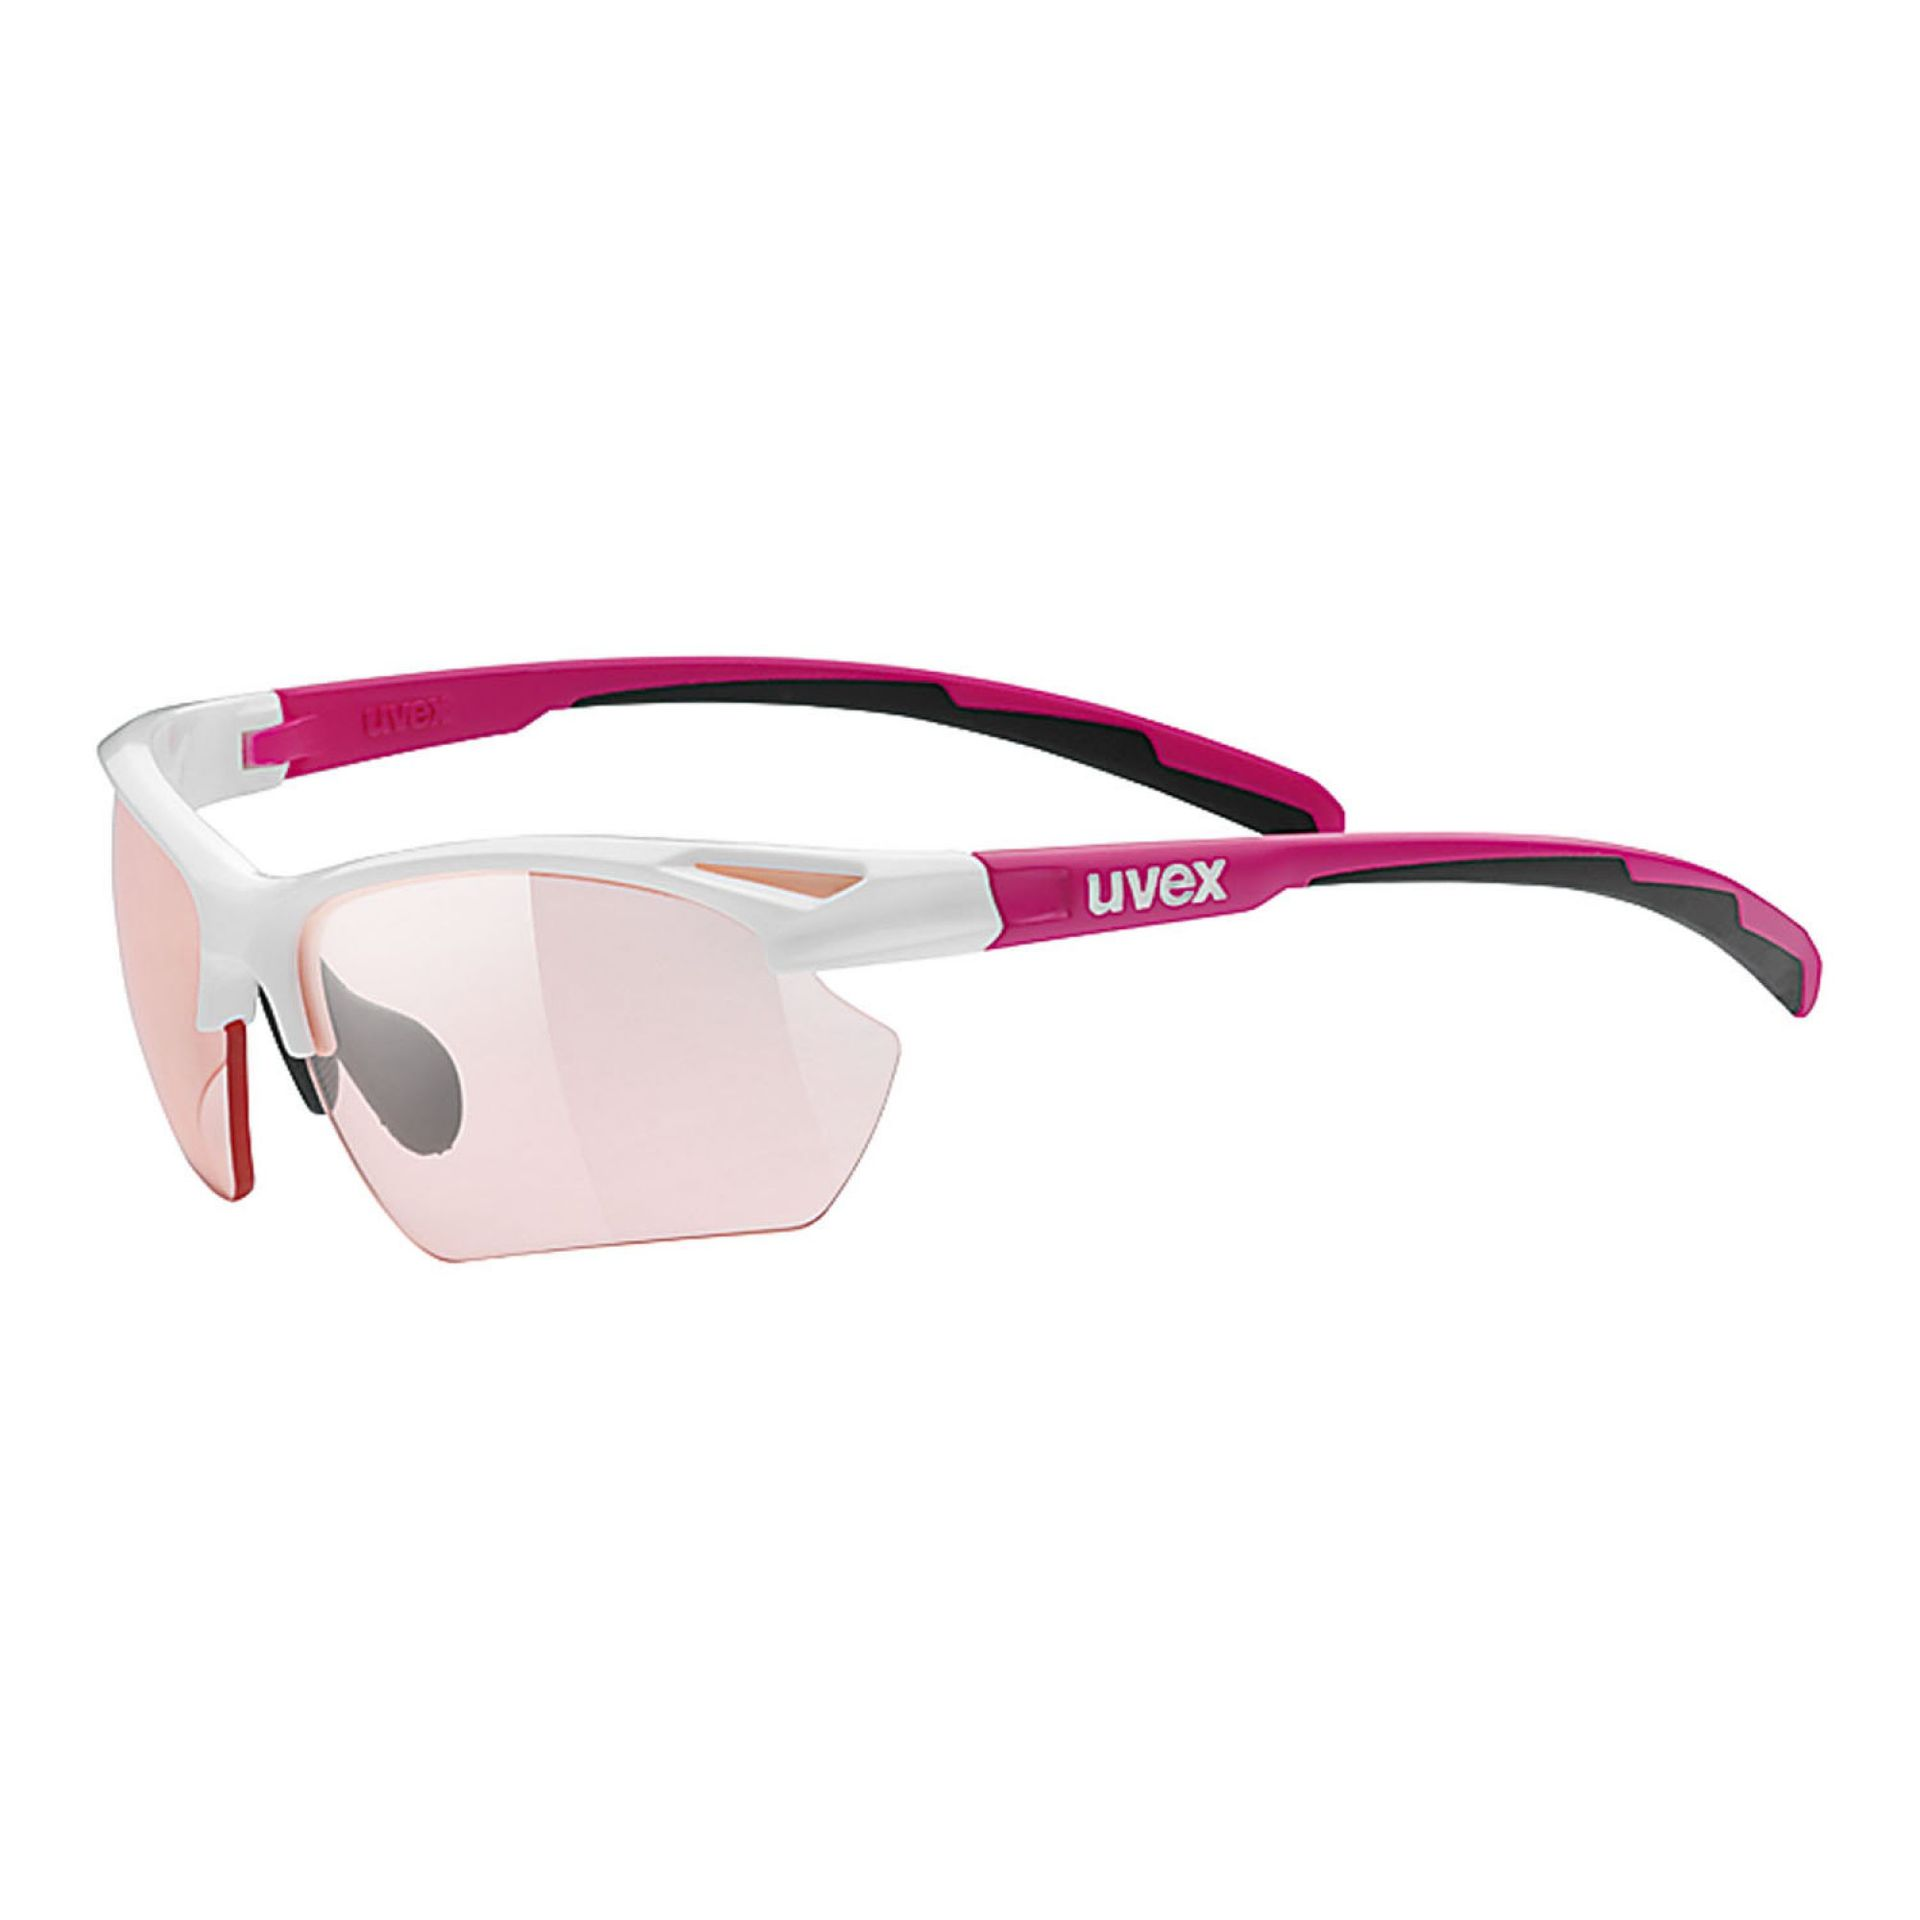 OKULARY UVEX  SPORTSTYLE 802 SMALL PINK WHITE